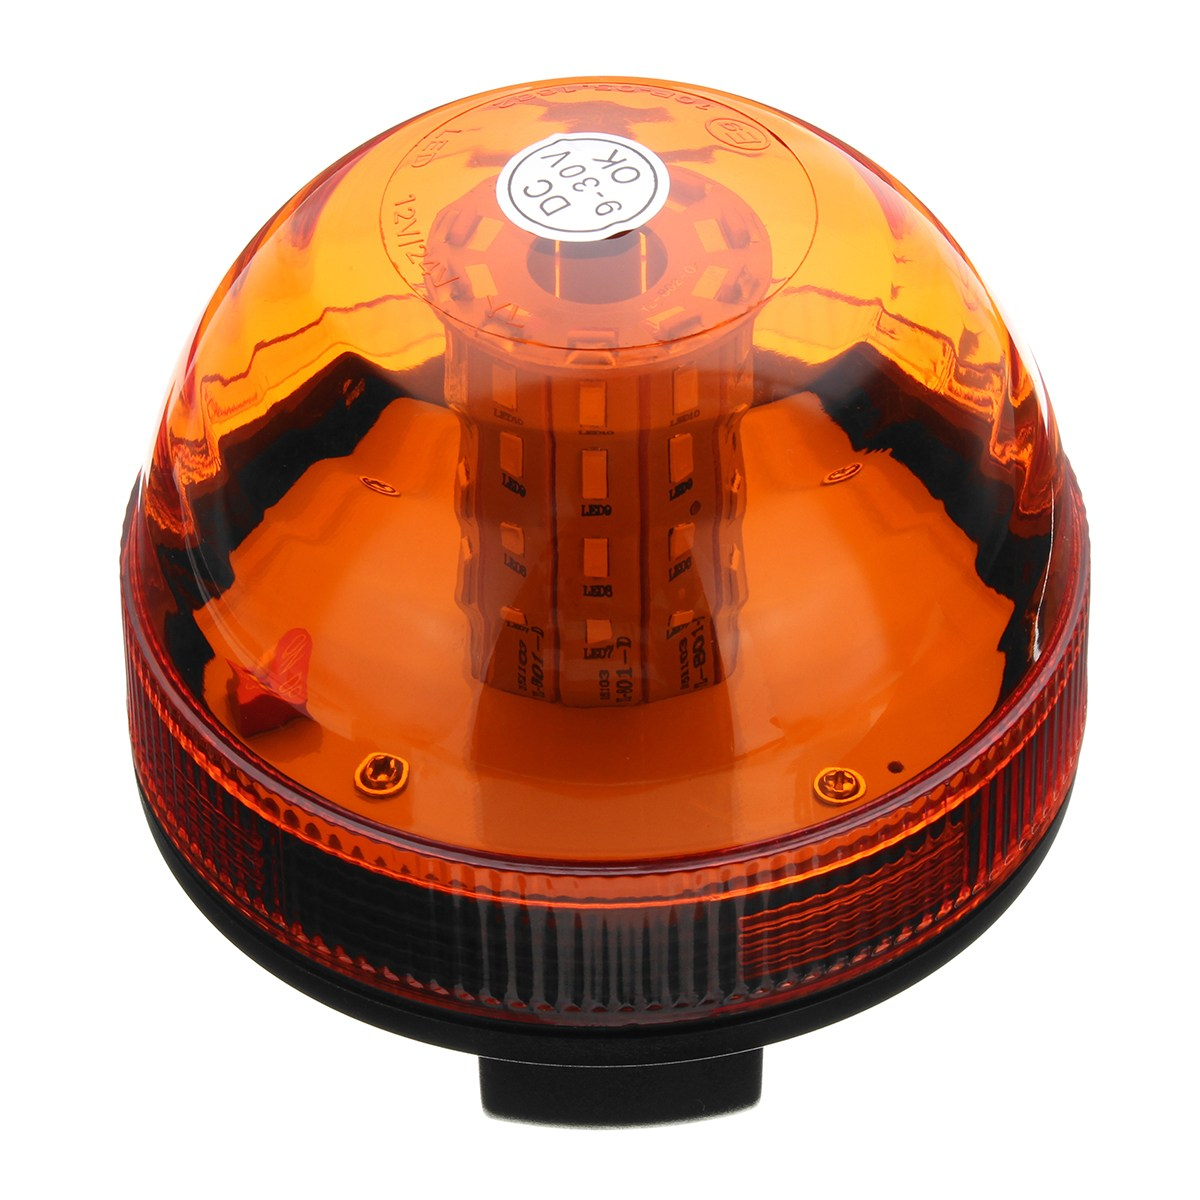 все цены на NEW Safurance 40 LED Rotating Flashing Amber Beacon Flexible Tractor Warning Light Roadway Safety онлайн